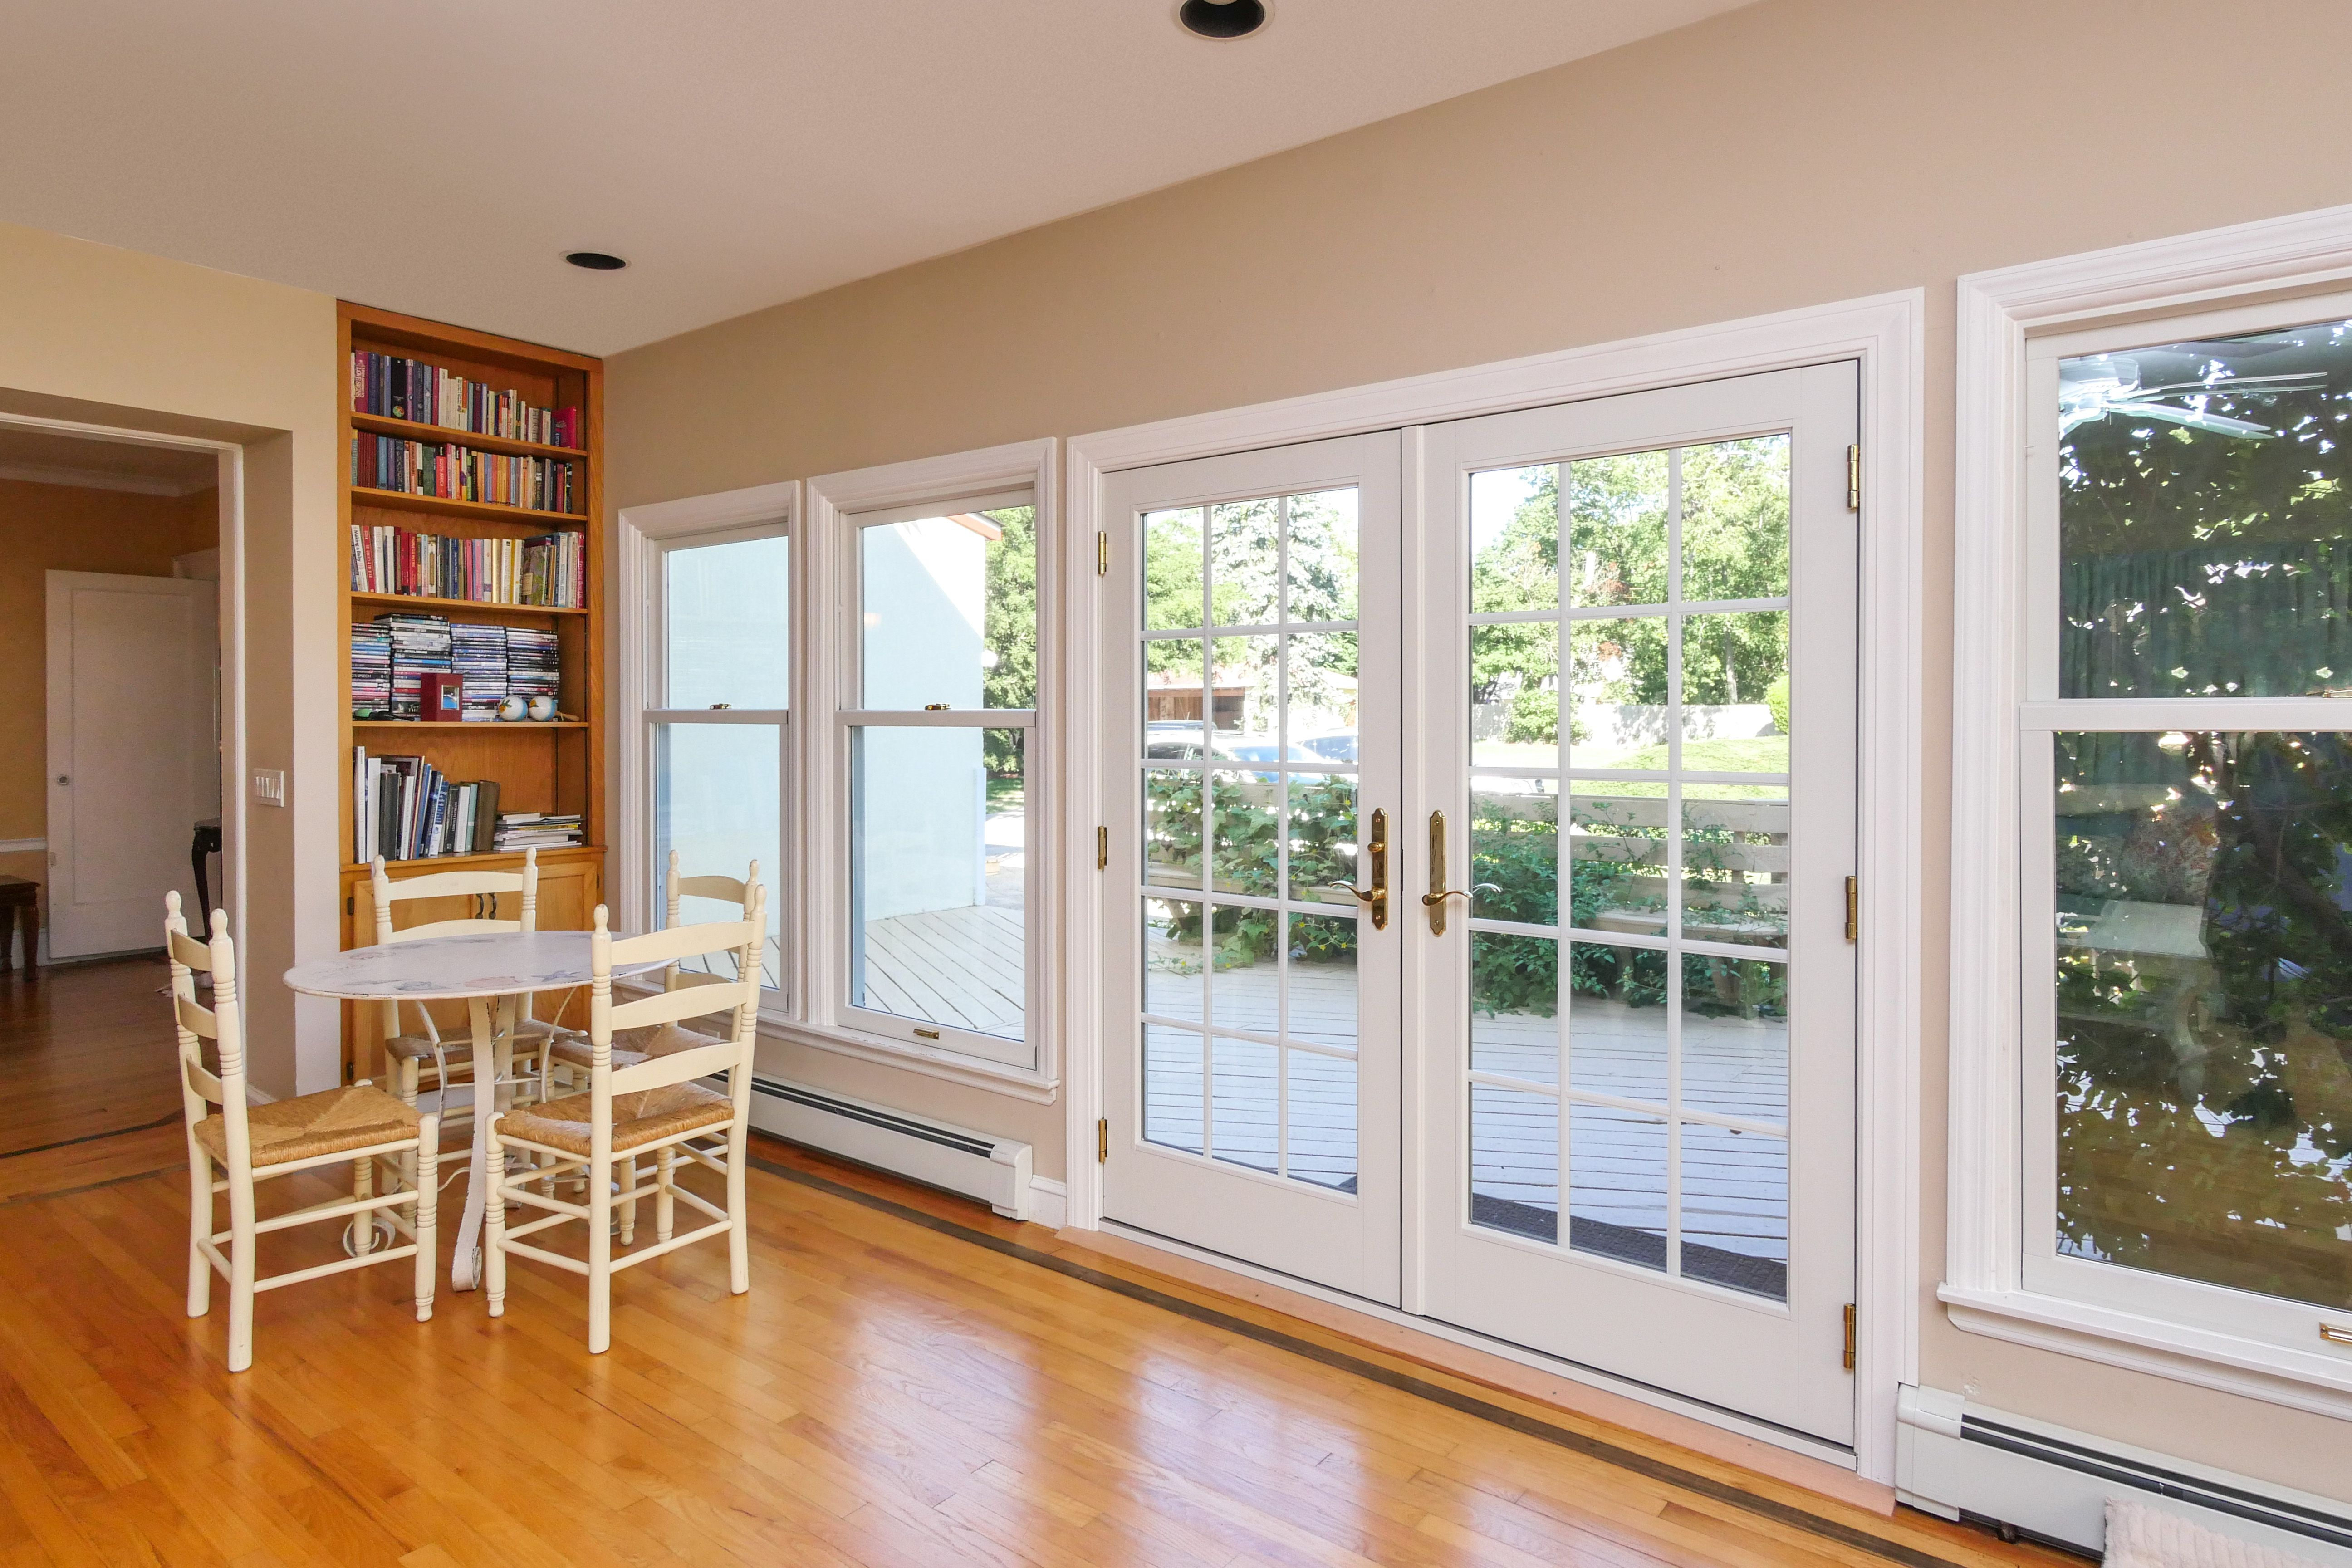 Beautiful New Windows And French Doors We Installed In A Great Suffolk County Home Beautiful French Doors Remodeling Renovation Home Remodeling